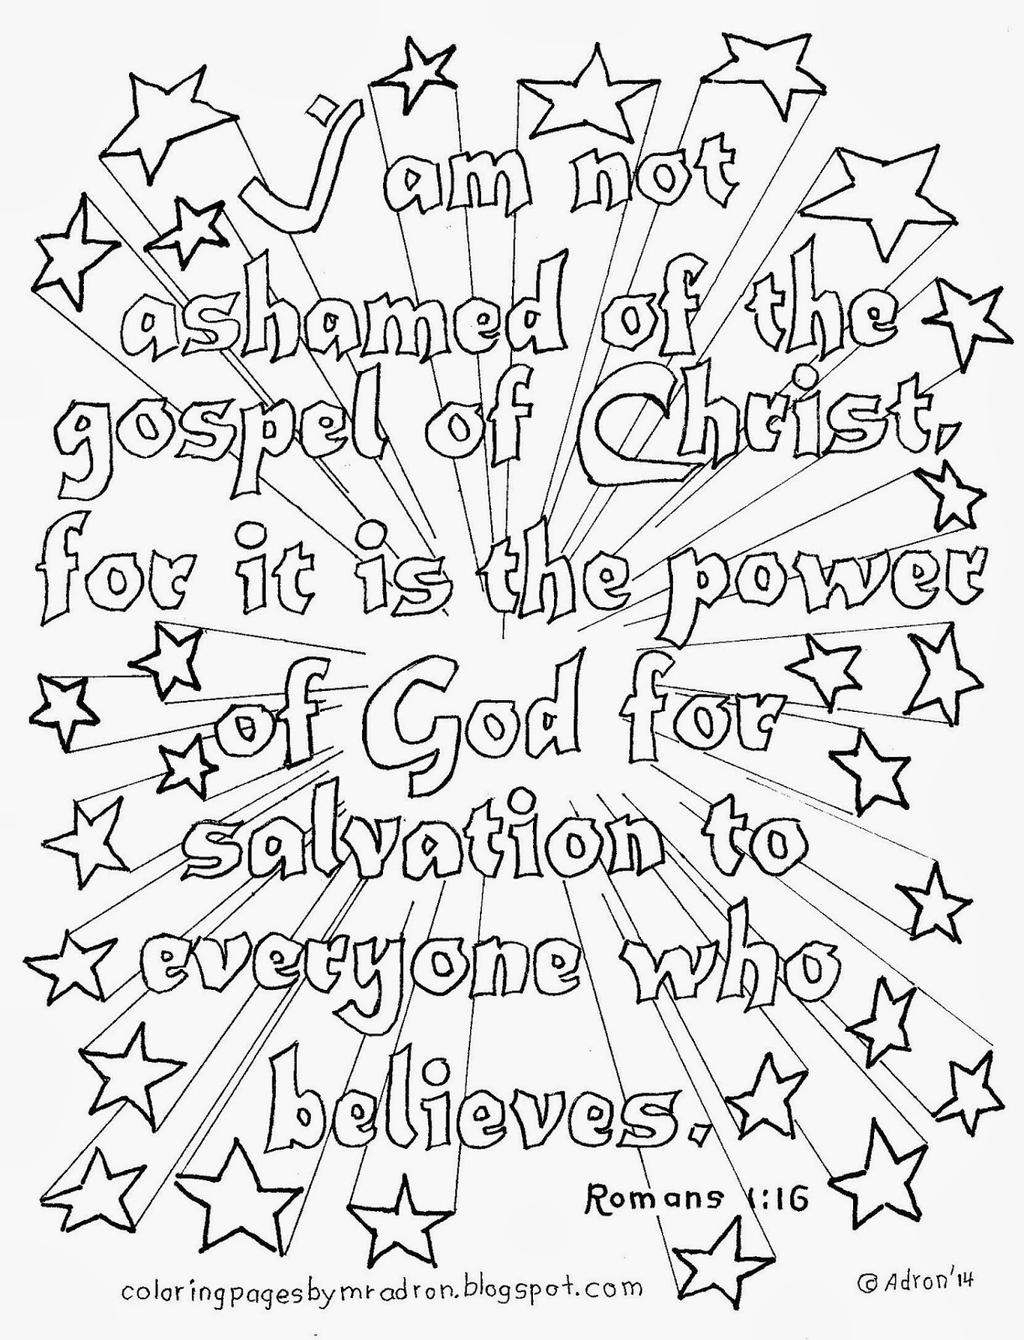 Printable Bible Coloring Pages Verses Ruva For Adults - Get Coloring - Free Printable Bible Coloring Pages With Verses